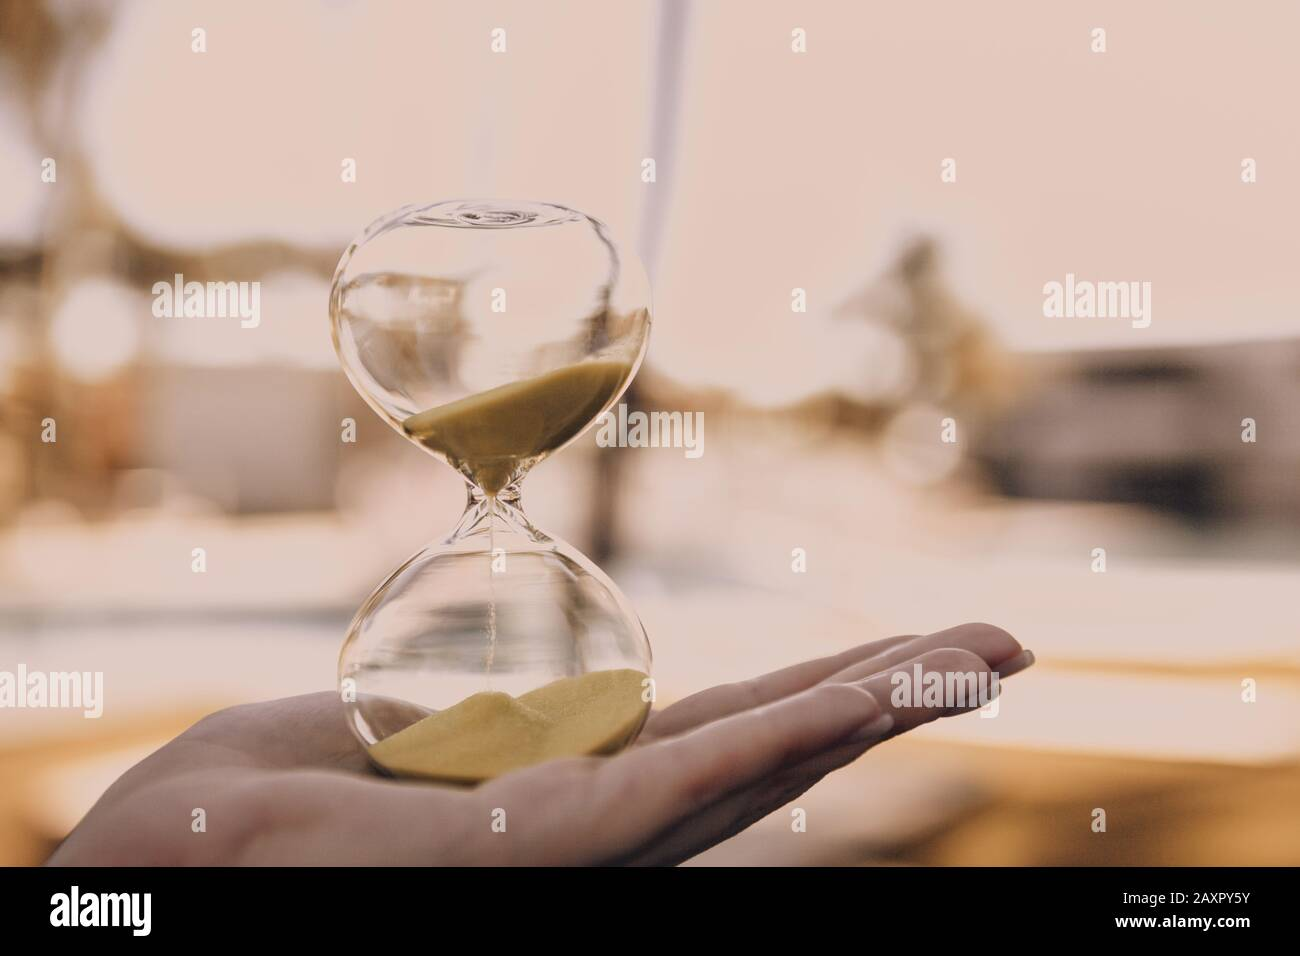 Hourglass in a female hand on a blurry light background, a symbol of the passage of time and the implementation of important life matters Stock Photo